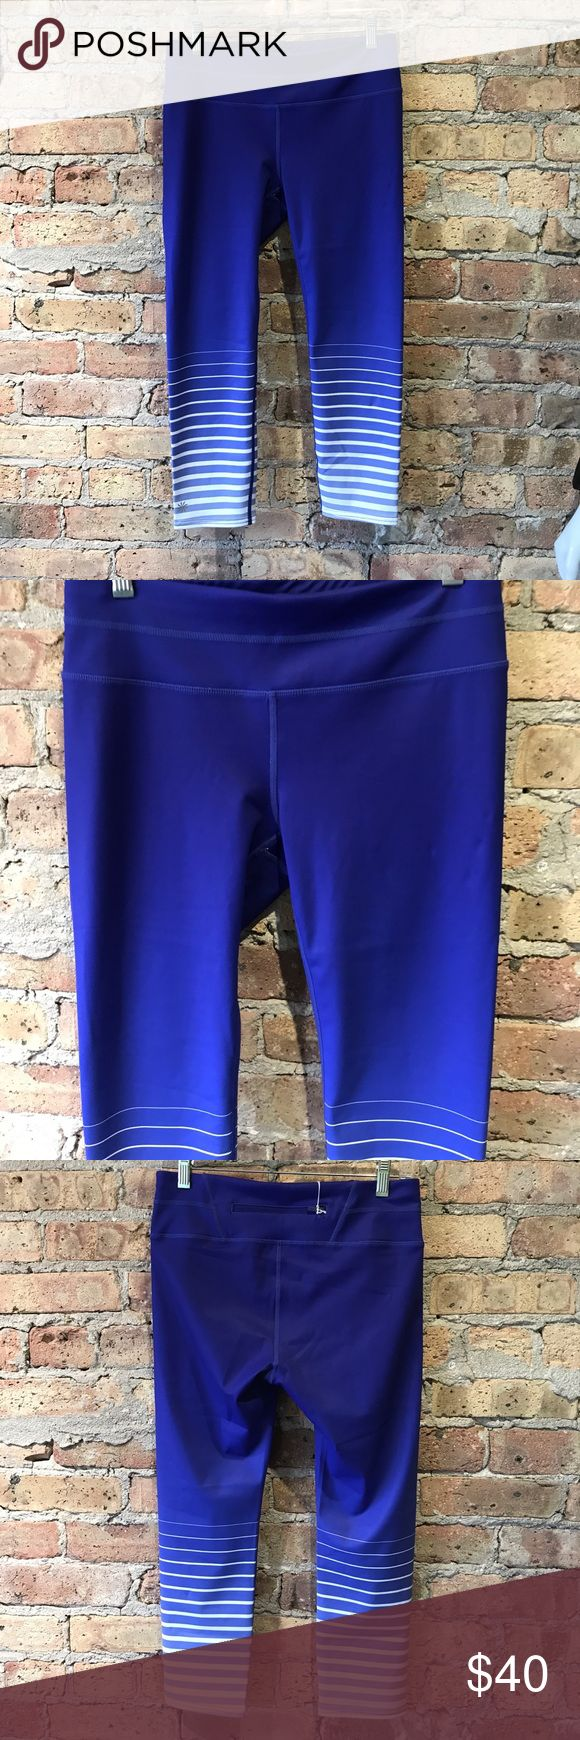 Athleta royal blue gradient leggings size small Preloved, excellent condition, 50654 Athleta Pants Leggings